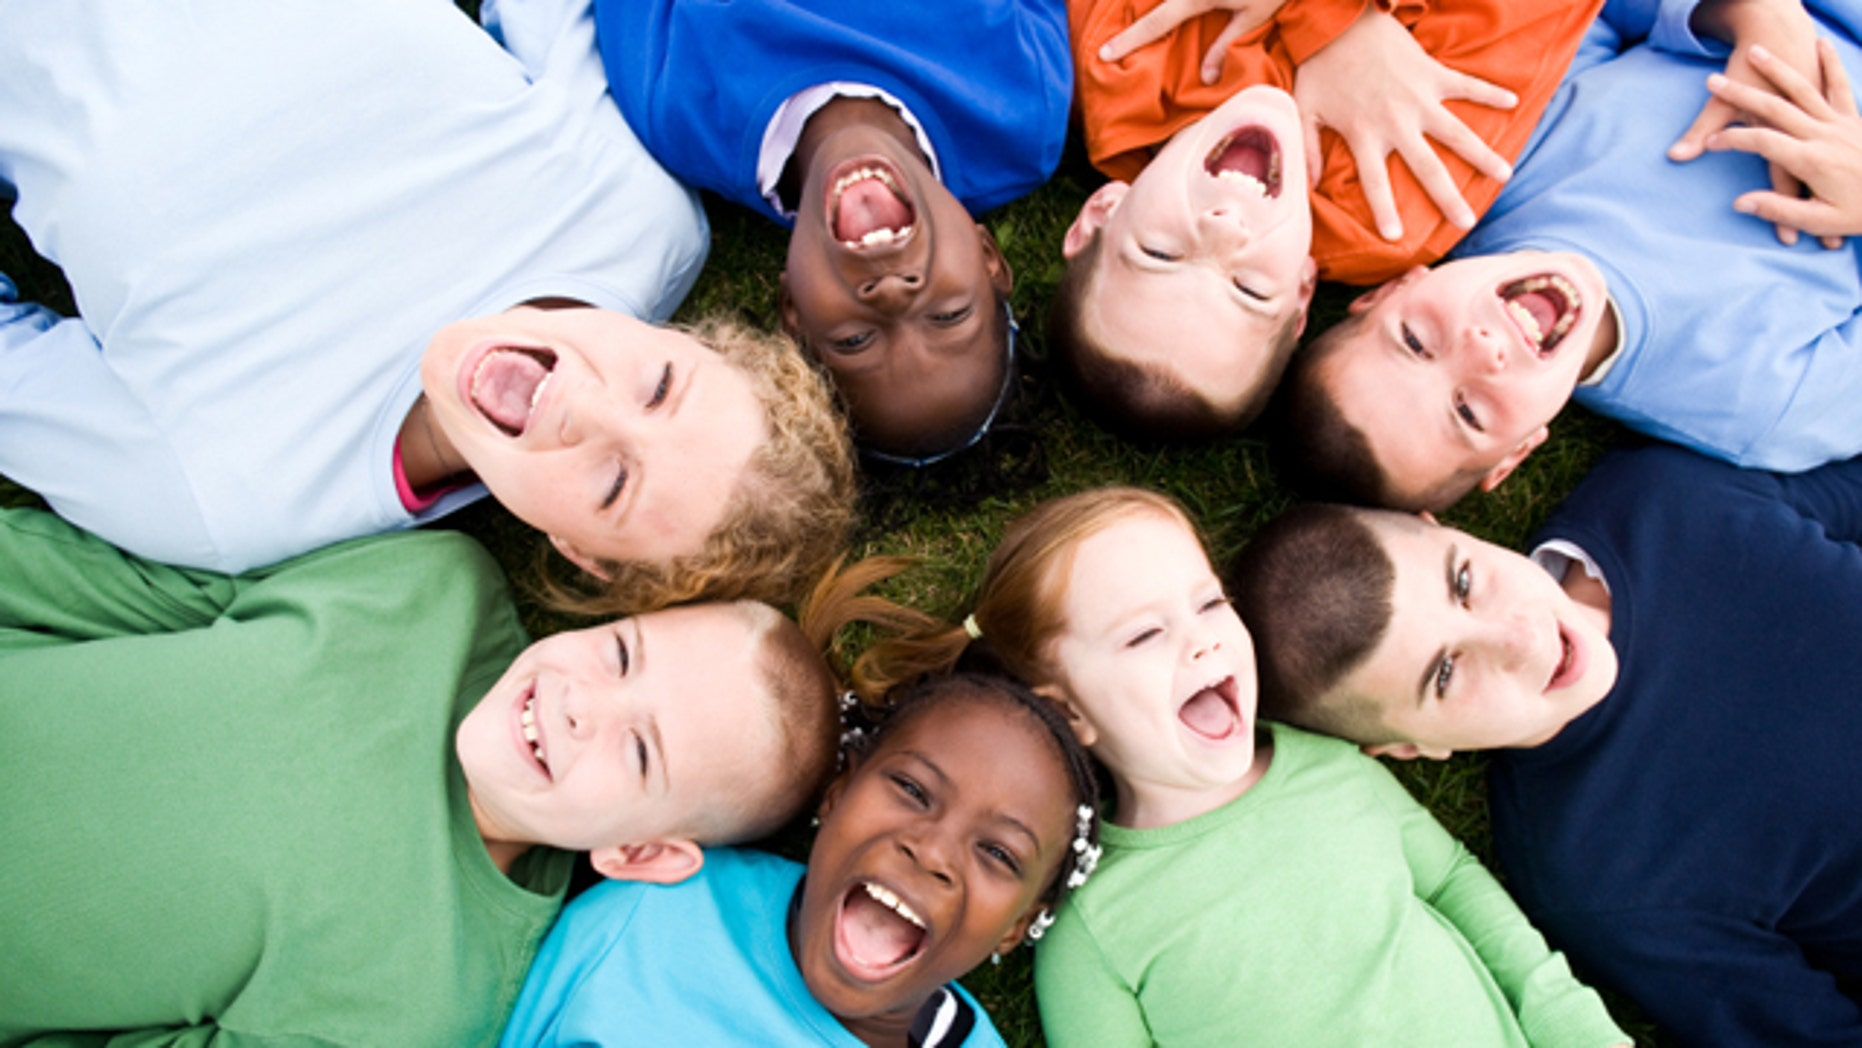 Exercise Makes Kids Brains More >> Kids Exercise Guidelines Need More Focus On Brain Development